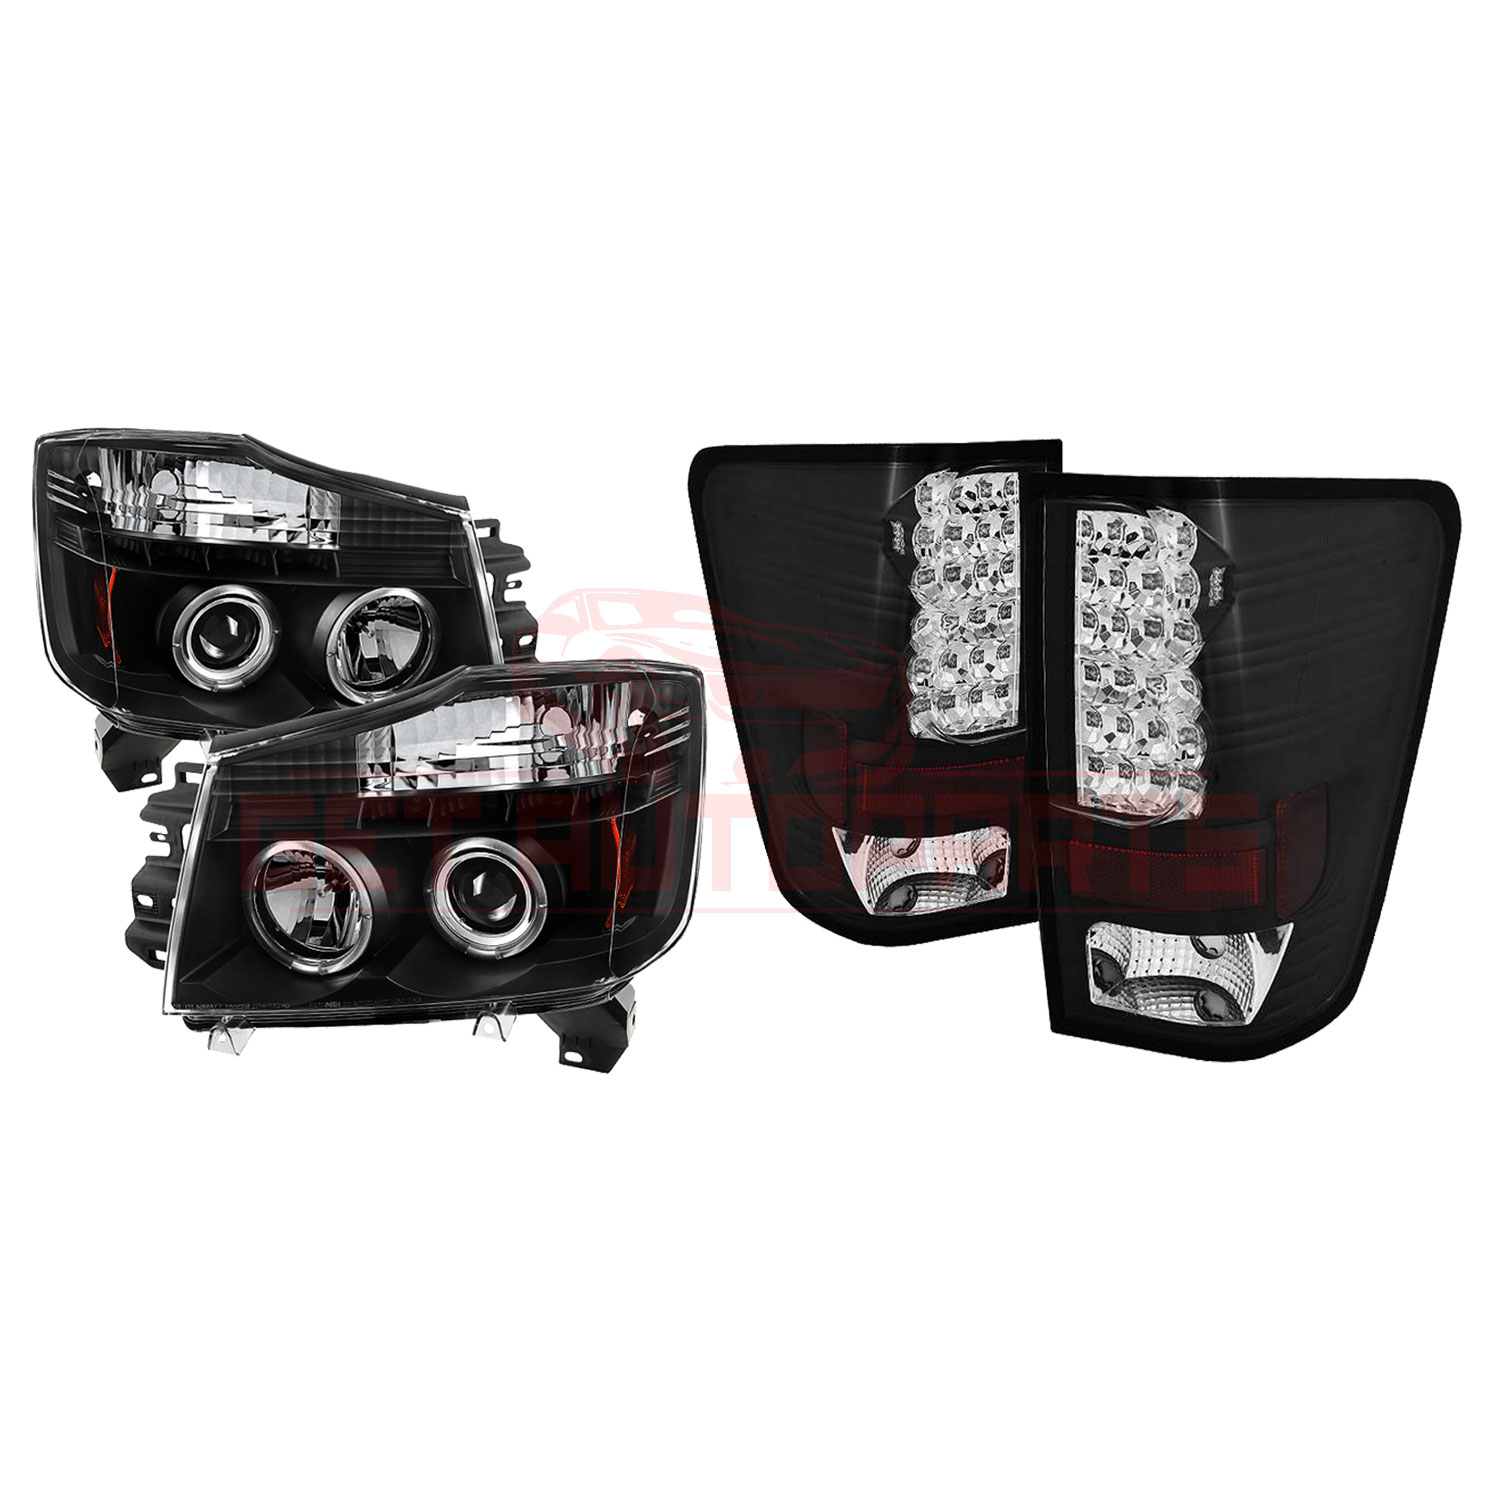 Spyder Halo LED Projec Headlights & LED Tail Lights For Nissan Titan 04-15 part in Headlight & Tail Light Covers category